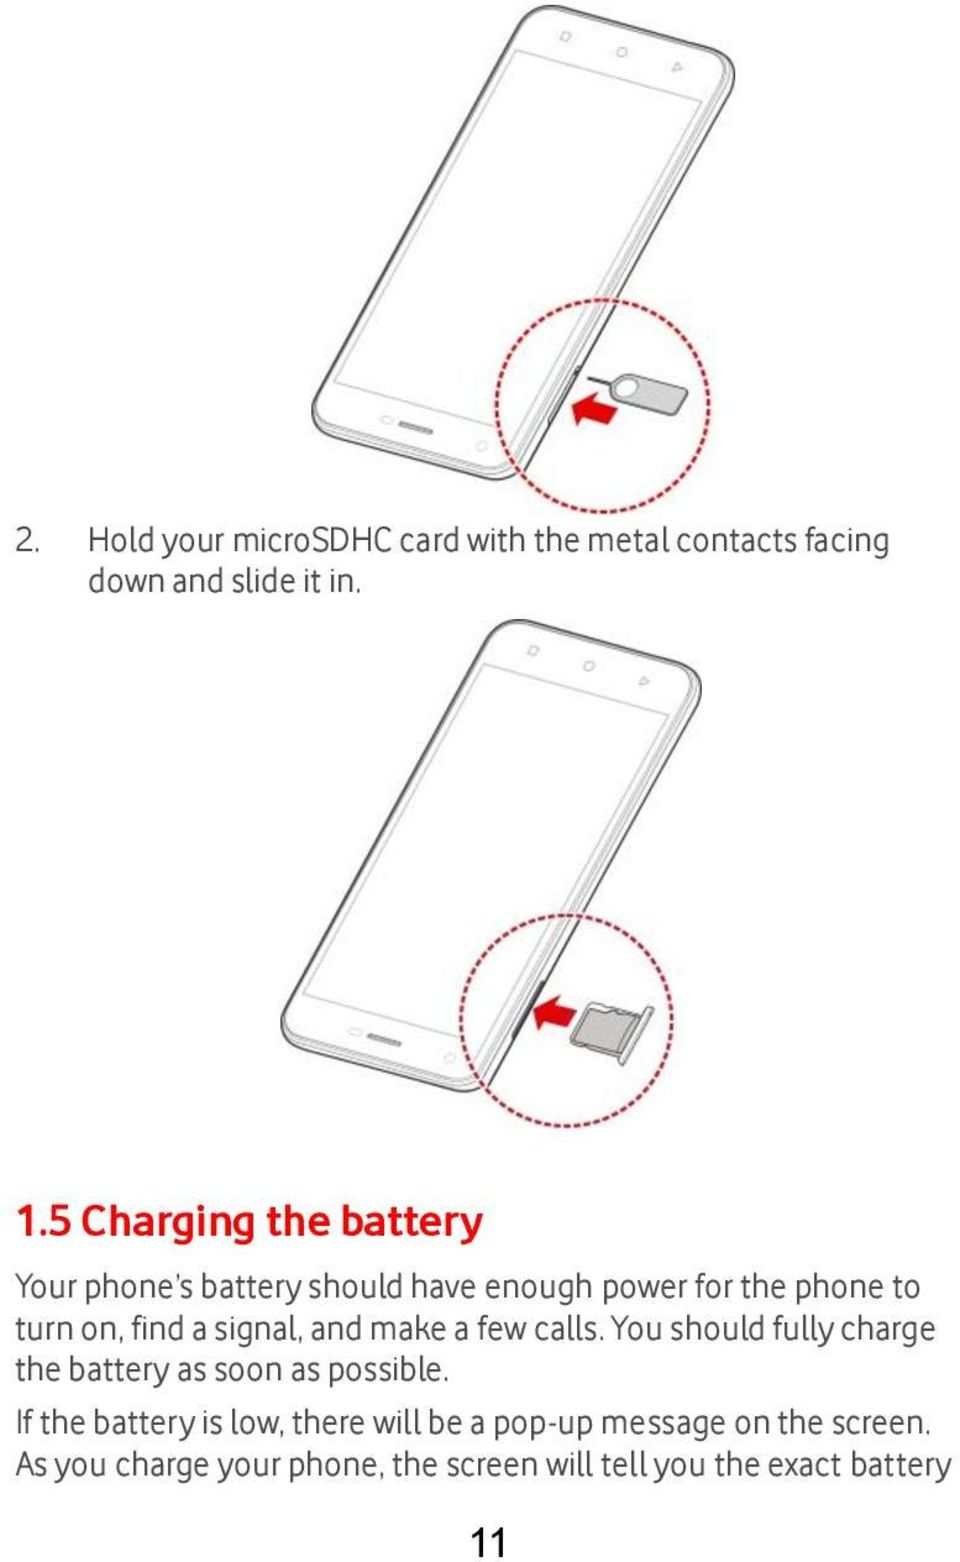 signal, and make a few calls. You should fully charge the battery as soon as possible.